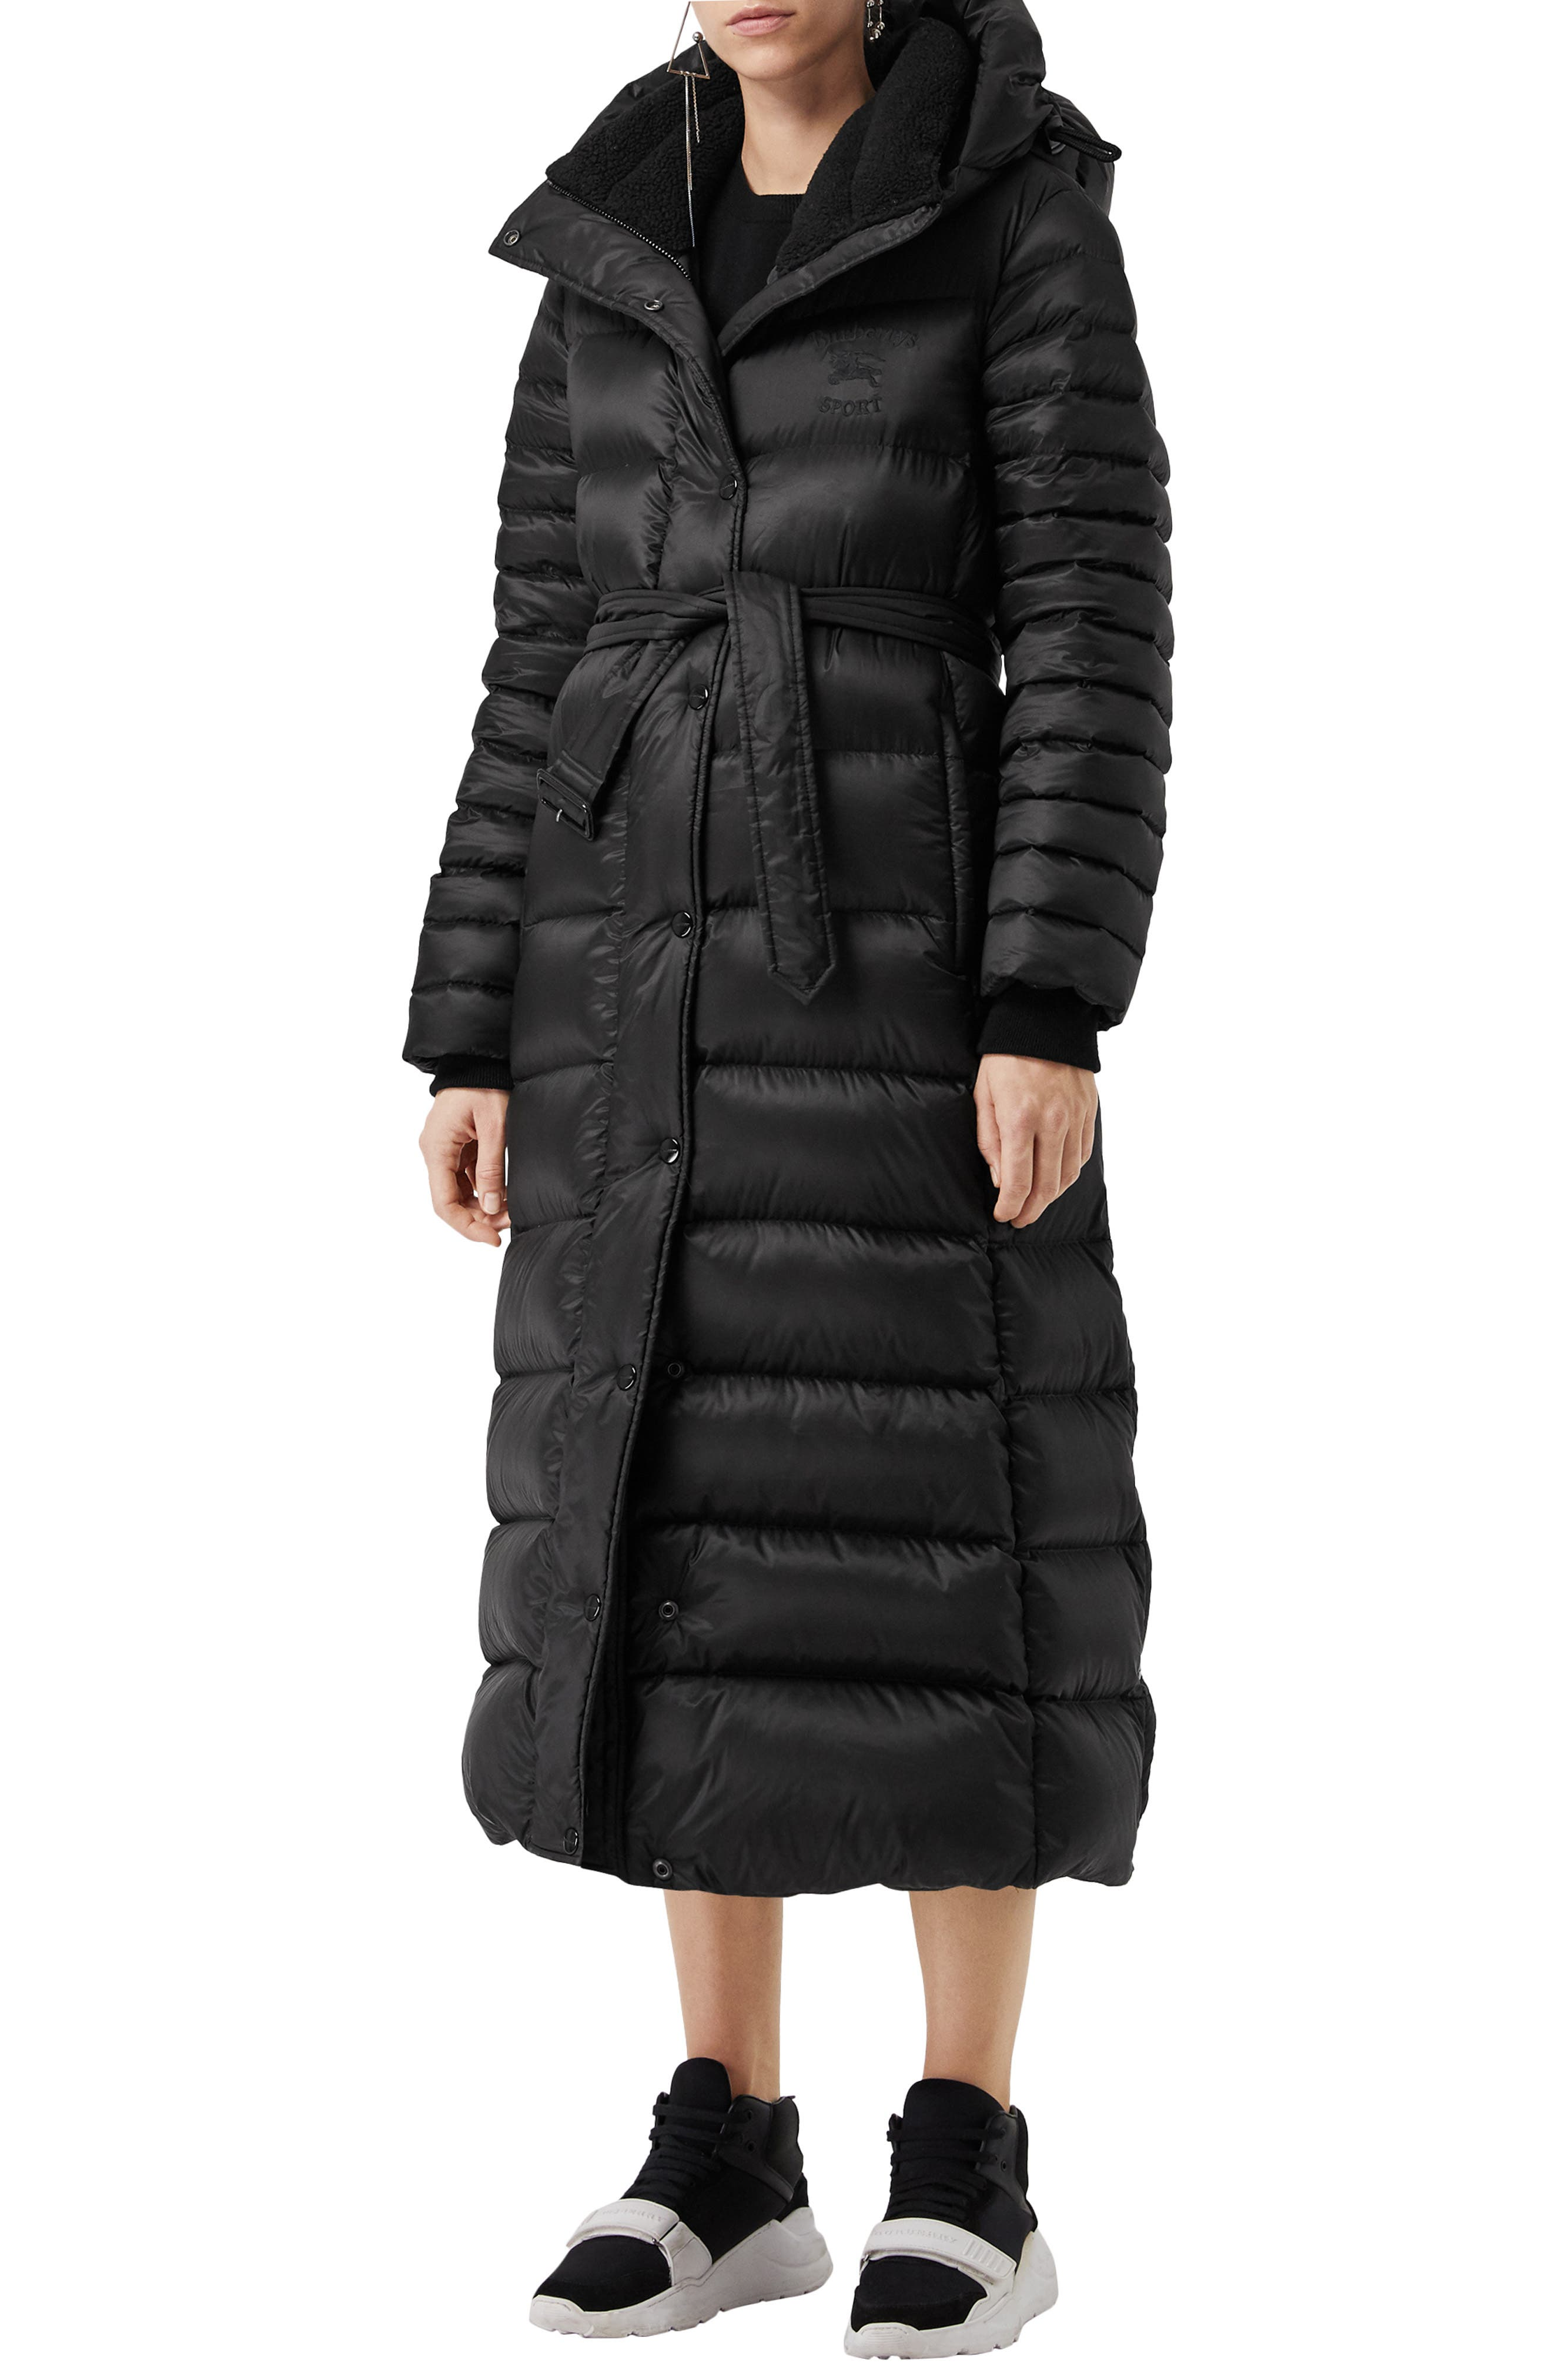 Kington Faux Fur Trim Long Down Coat,                             Main thumbnail 1, color,                             BLACK